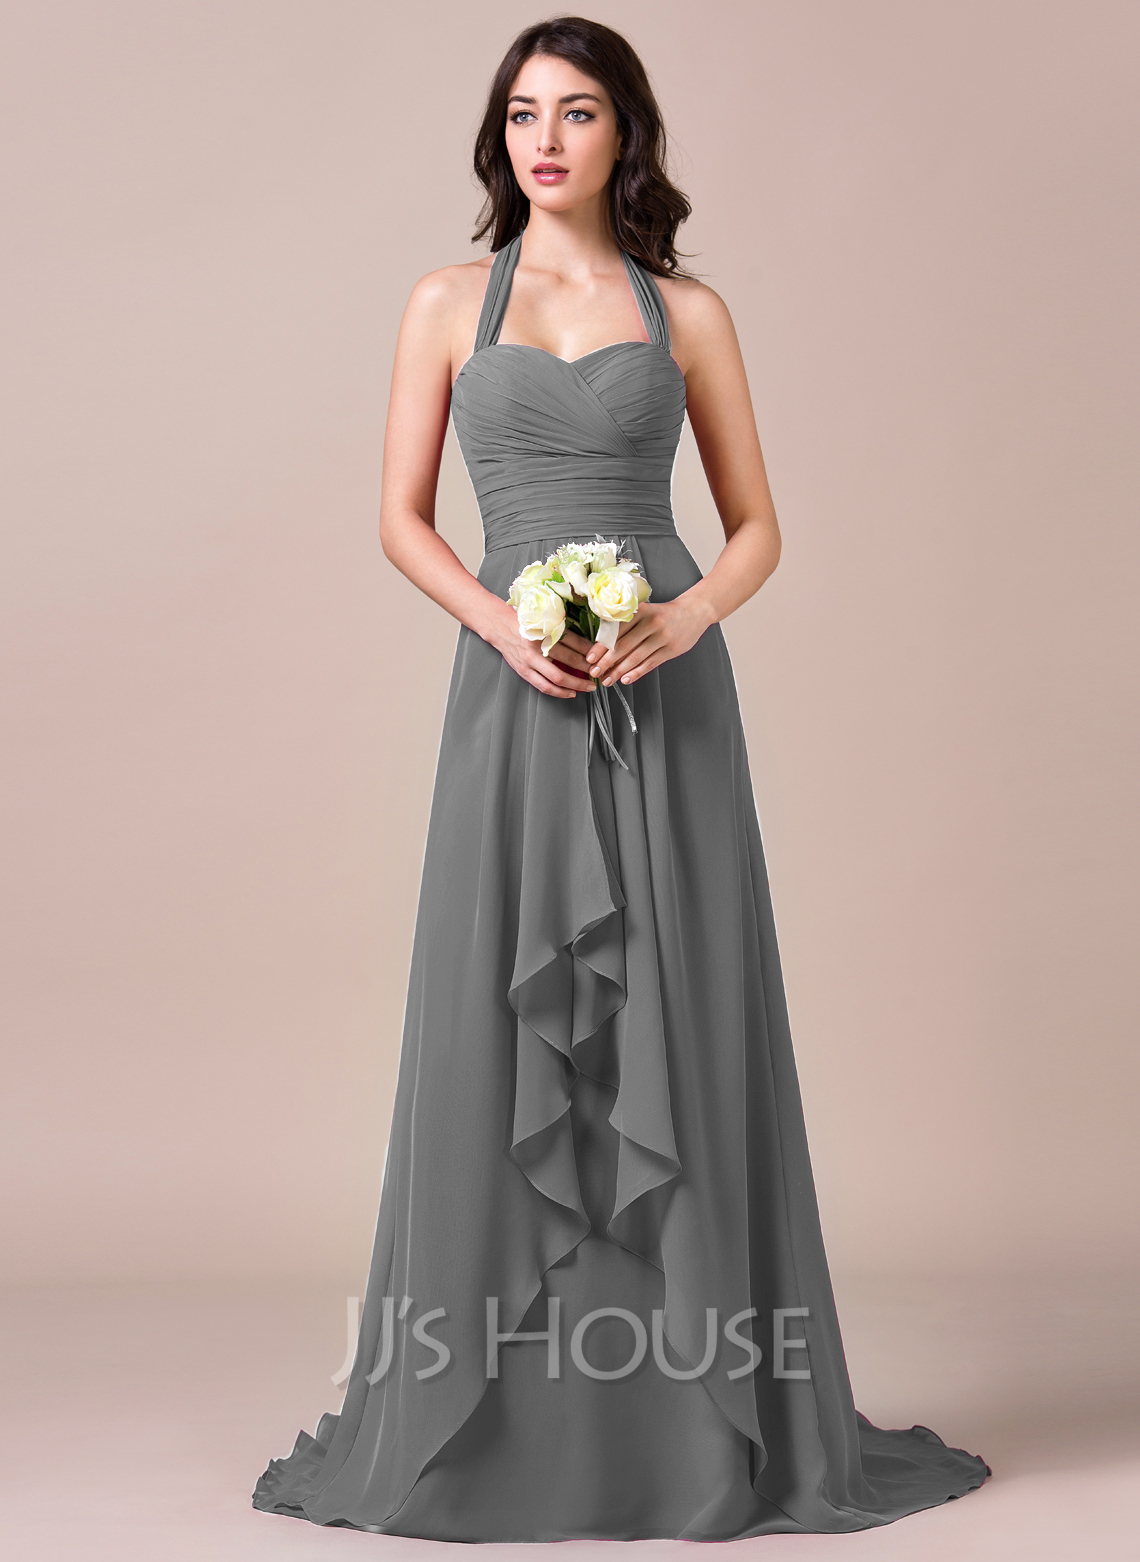 A lineprincess halter sweep train chiffon bridesmaid dress with a lineprincess halter sweep train chiffon bridesmaid dress with bows loading zoom ombrellifo Images